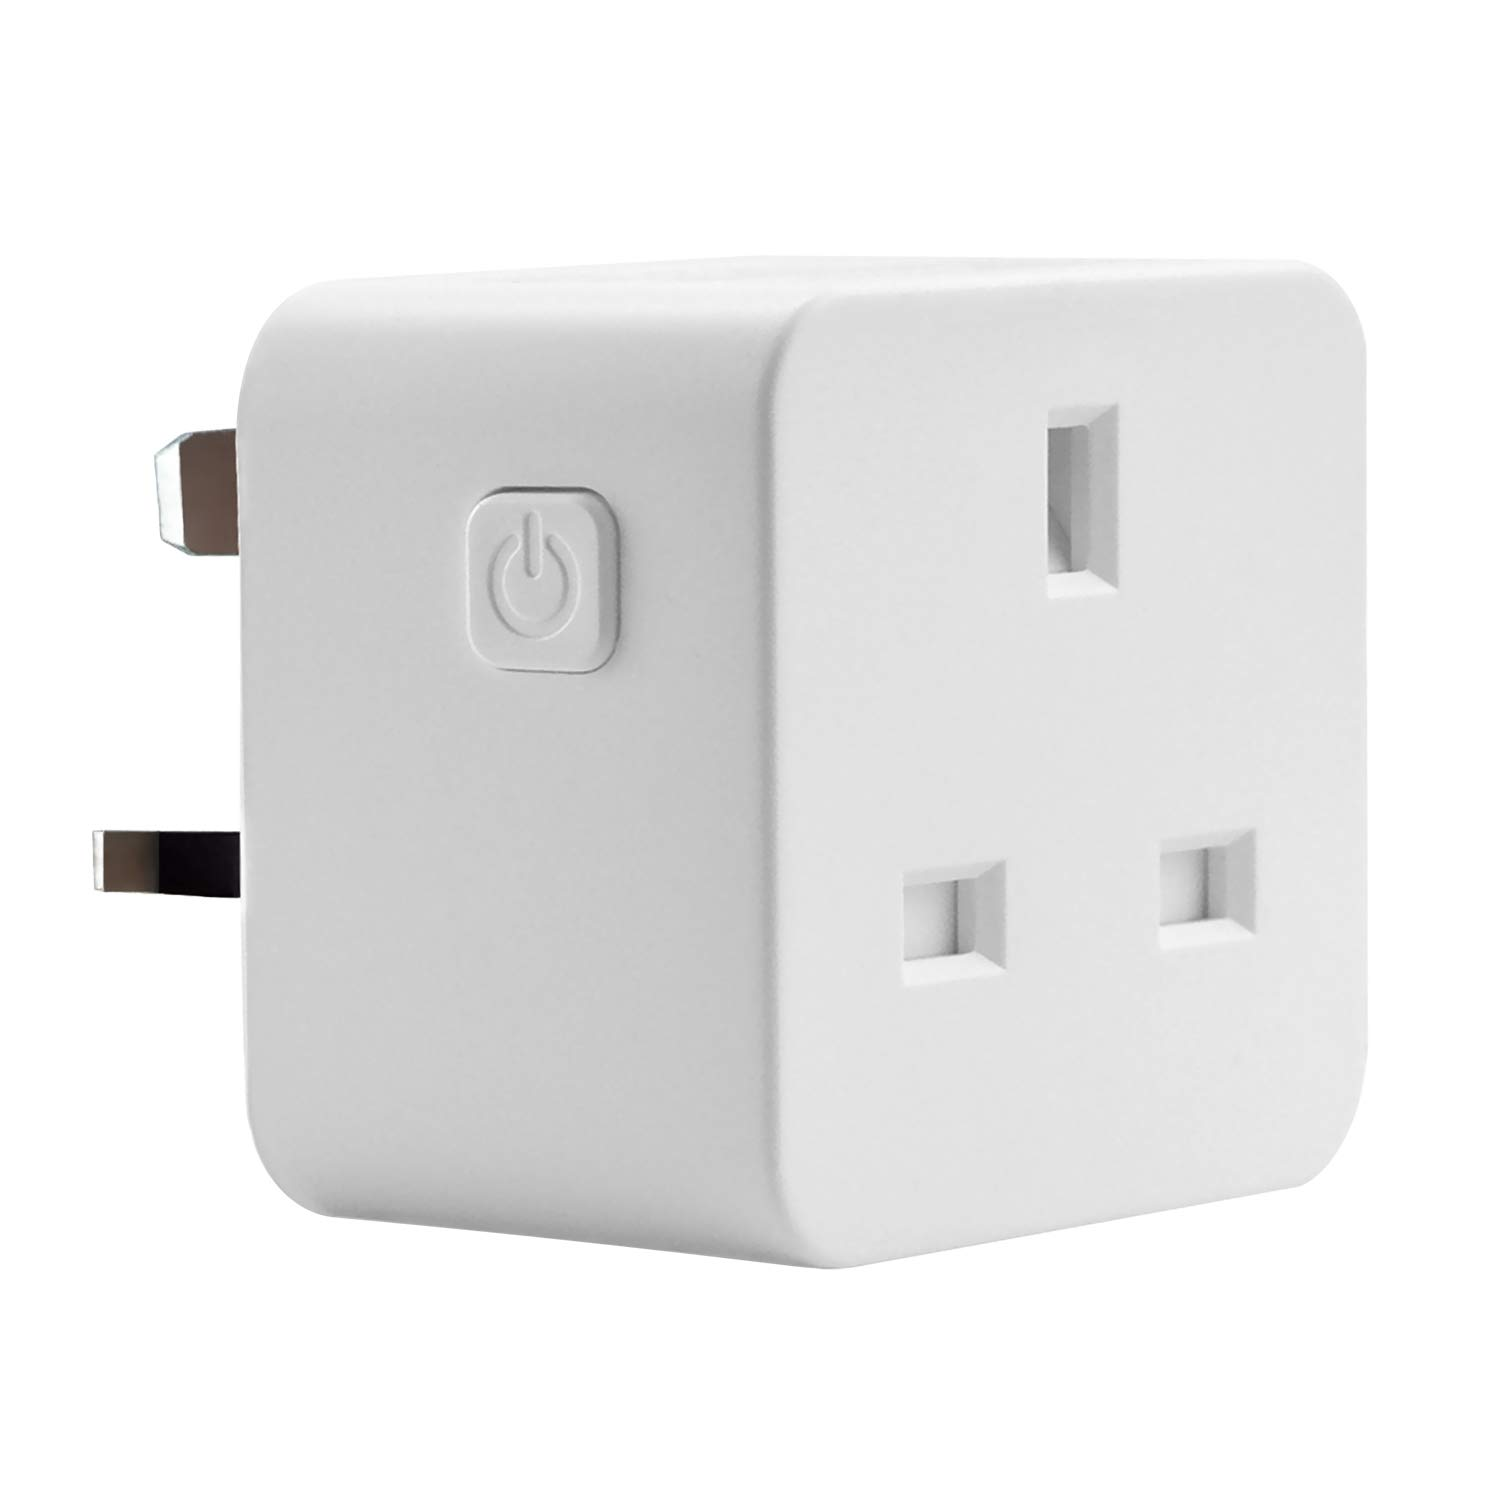 Woox Smart Plug, Works with Alexa OnePlus ES R4785